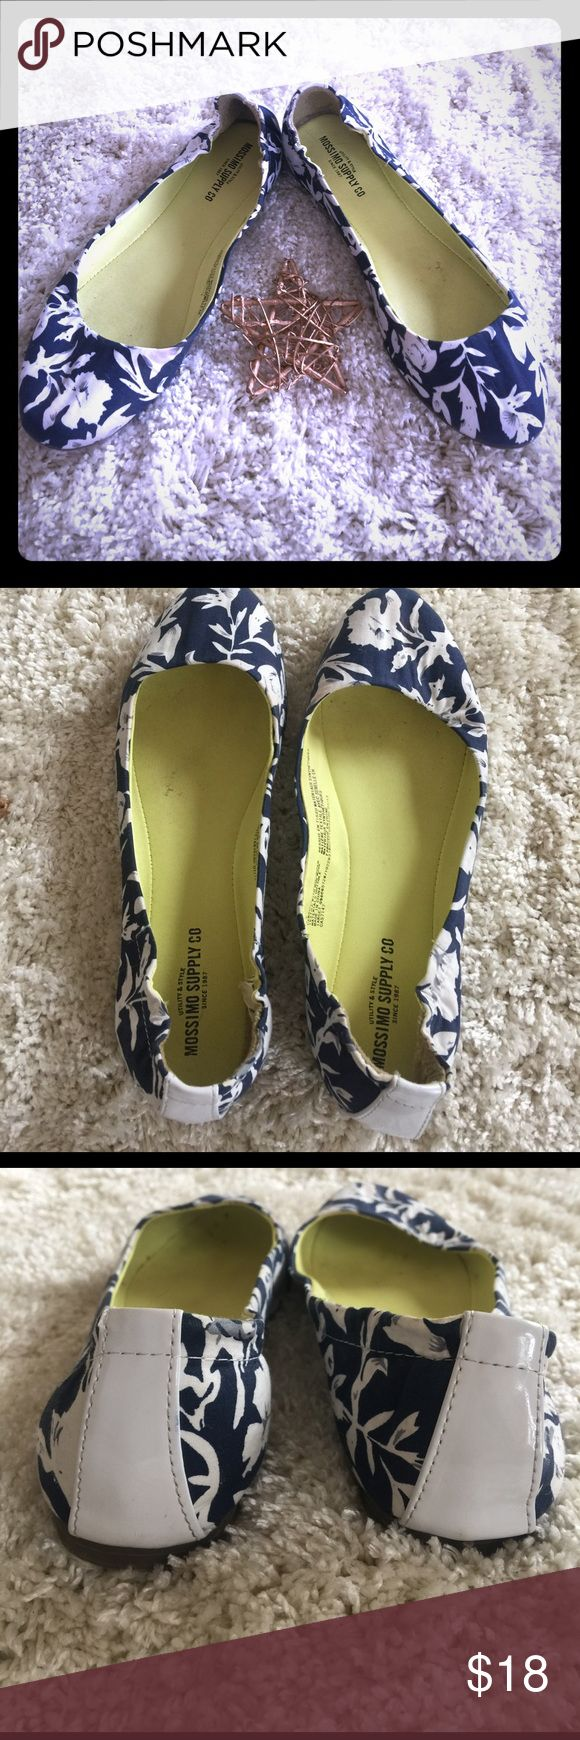 Classic Floral Ballet Flats Perfect for Spring! Classic navy blue and ivory pairs well with everything! Nonslip rubber soles with cotton material and elastic stretch heels make these extremely comfortable. Patent leather white detail on back. Will be freshly laundered before shipping! A generous 7.5. Open to trades! Merona Shoes Flats & Loafers